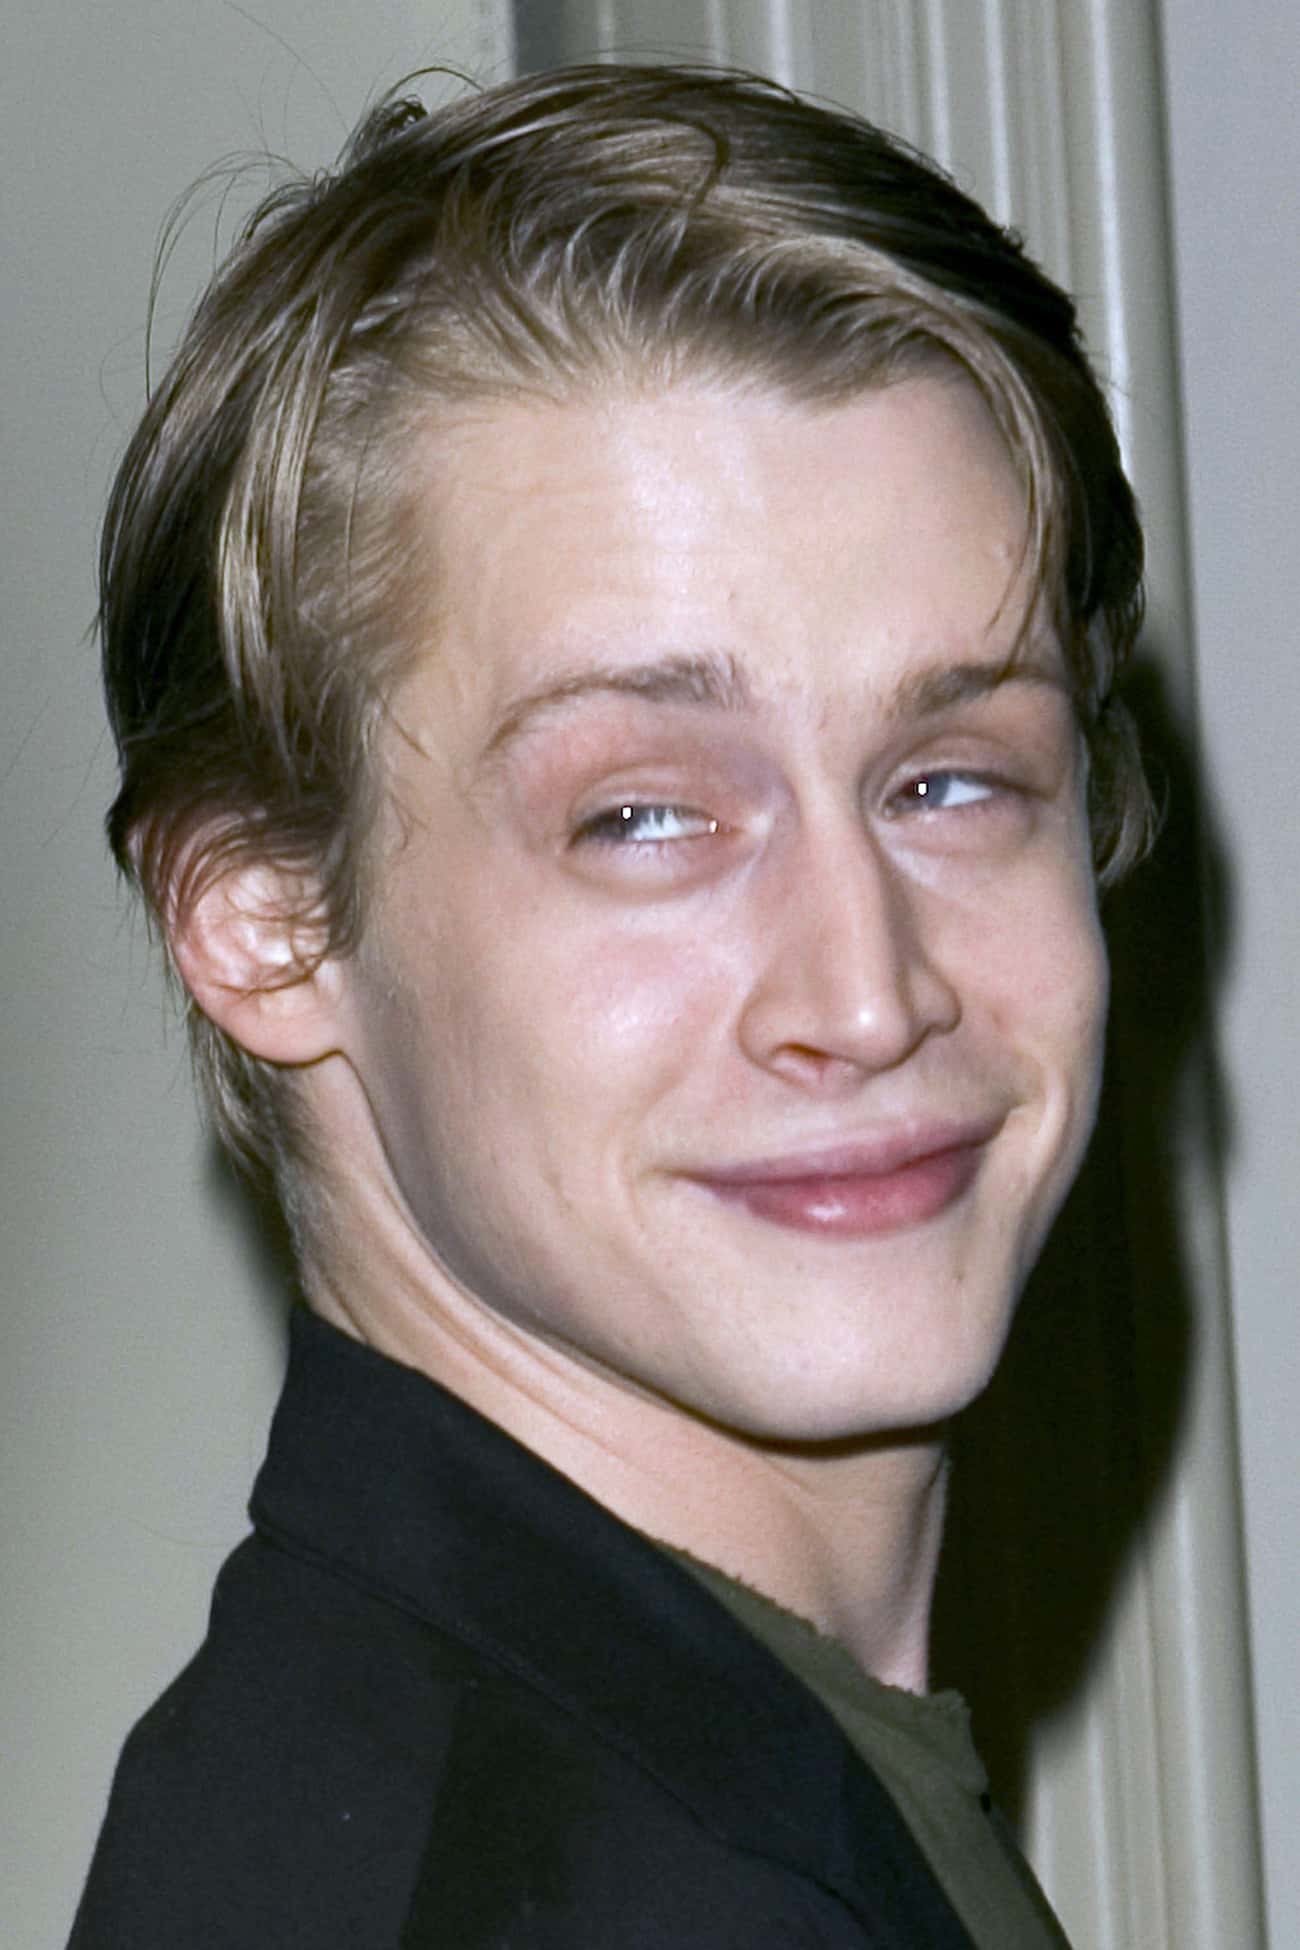 Macaulay Culkin is listed (or ranked) 2 on the list Male Celebrities Who Are 5'6""